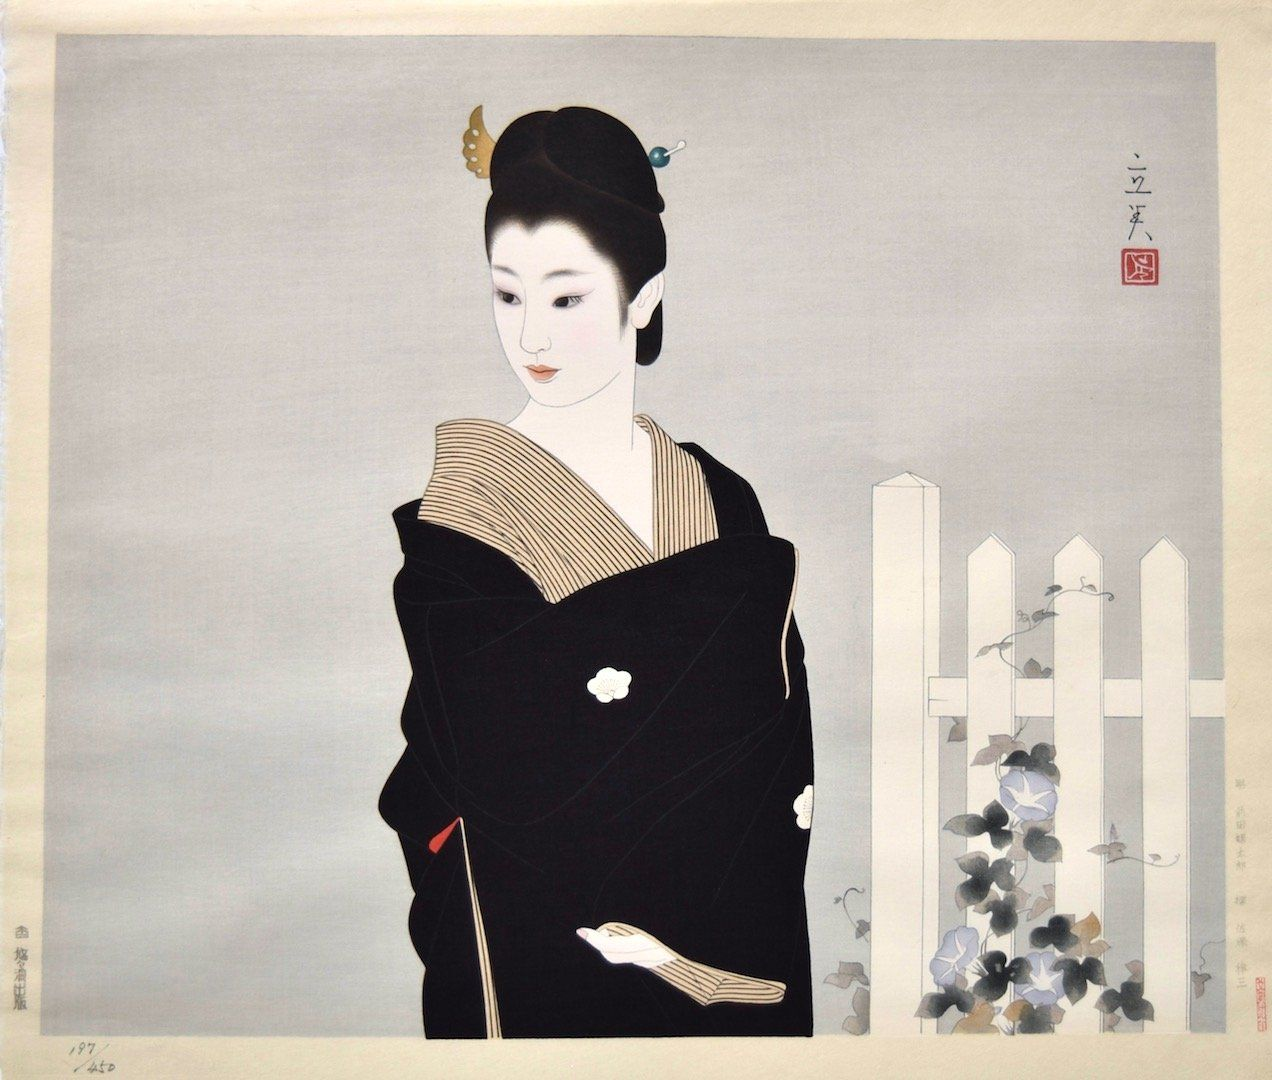 """This is an amazing woodblock print """"Akashicho"""" (Garden corner) is by Tatsumi Shimura (1907-1980). Tatsumi said about this print, """"I feel Akashicho (a very old section of Tokyo) of admiration and admired the depth of the image taste since the founder of a religious sect Kiyokata* died. They were many kept girls by a man in Tsukiji of the Meiji era. The woman who appeared to see off the man who returned early in the morning of early fall. The empty sadness that does not know when he next comes. Sh"""